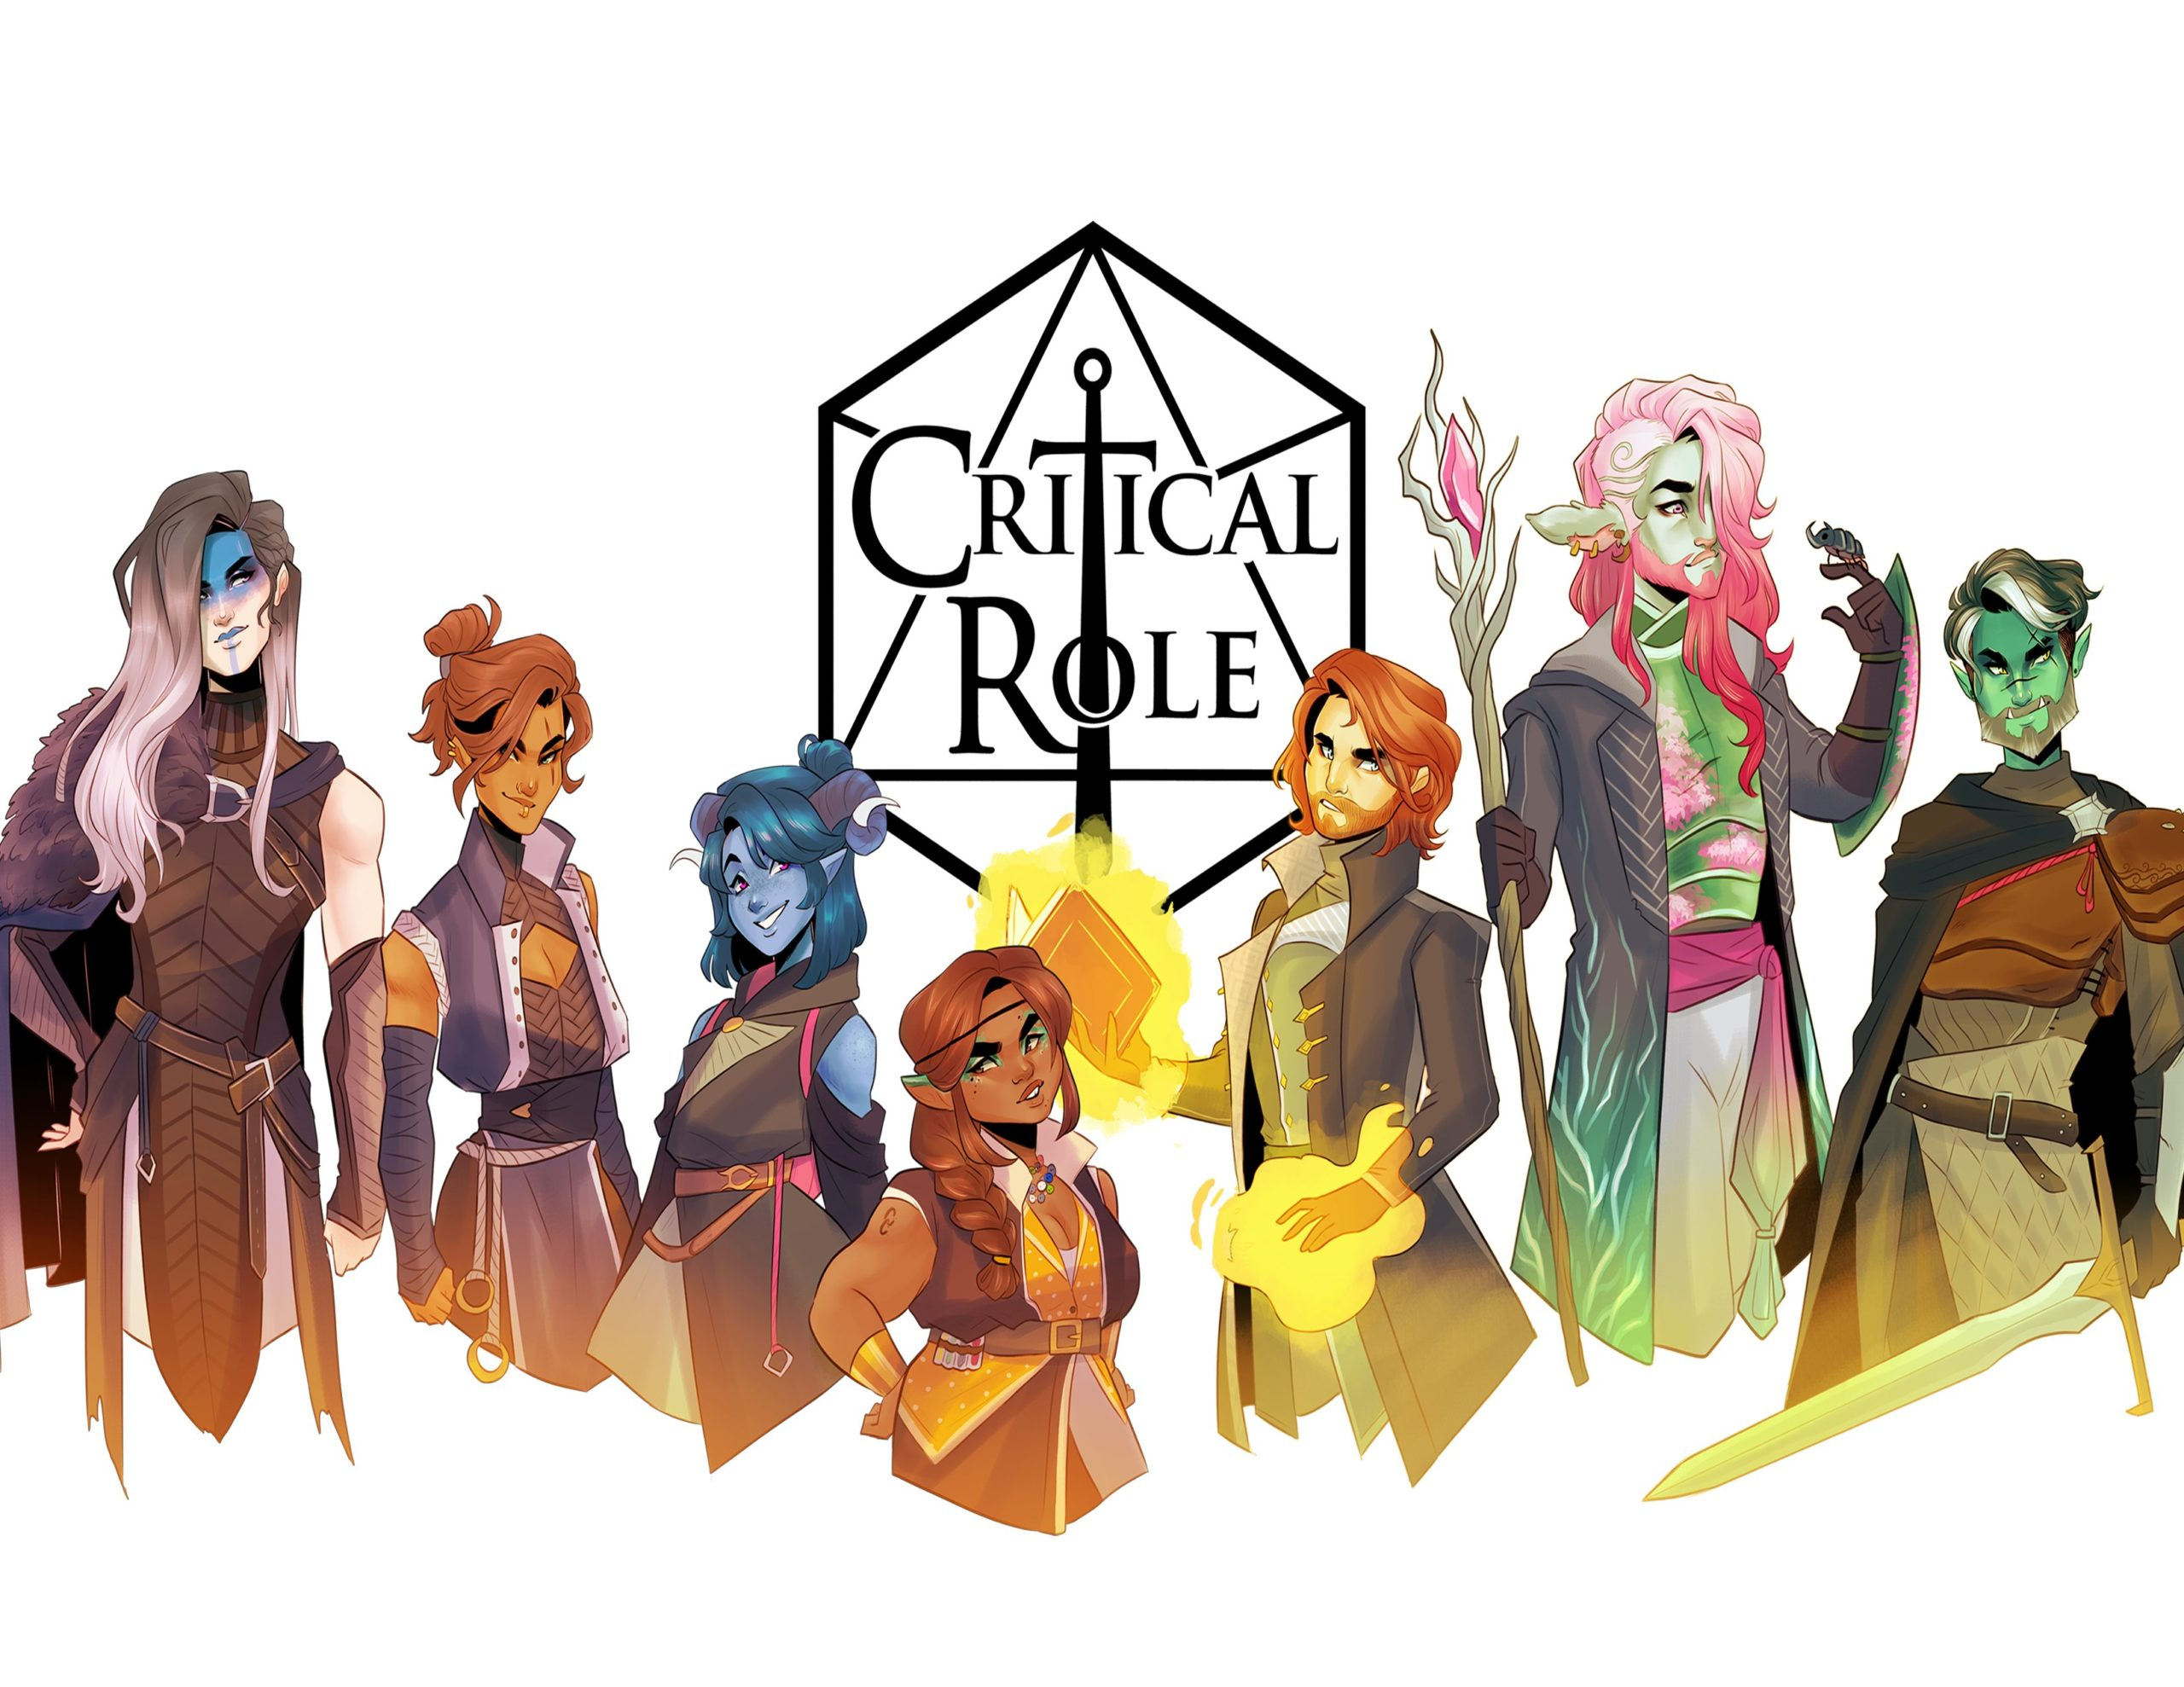 Critical Role Review C2 Episode 113 The Geekly Grind 1280 x 1003 jpeg 449 кб. the geekly grind